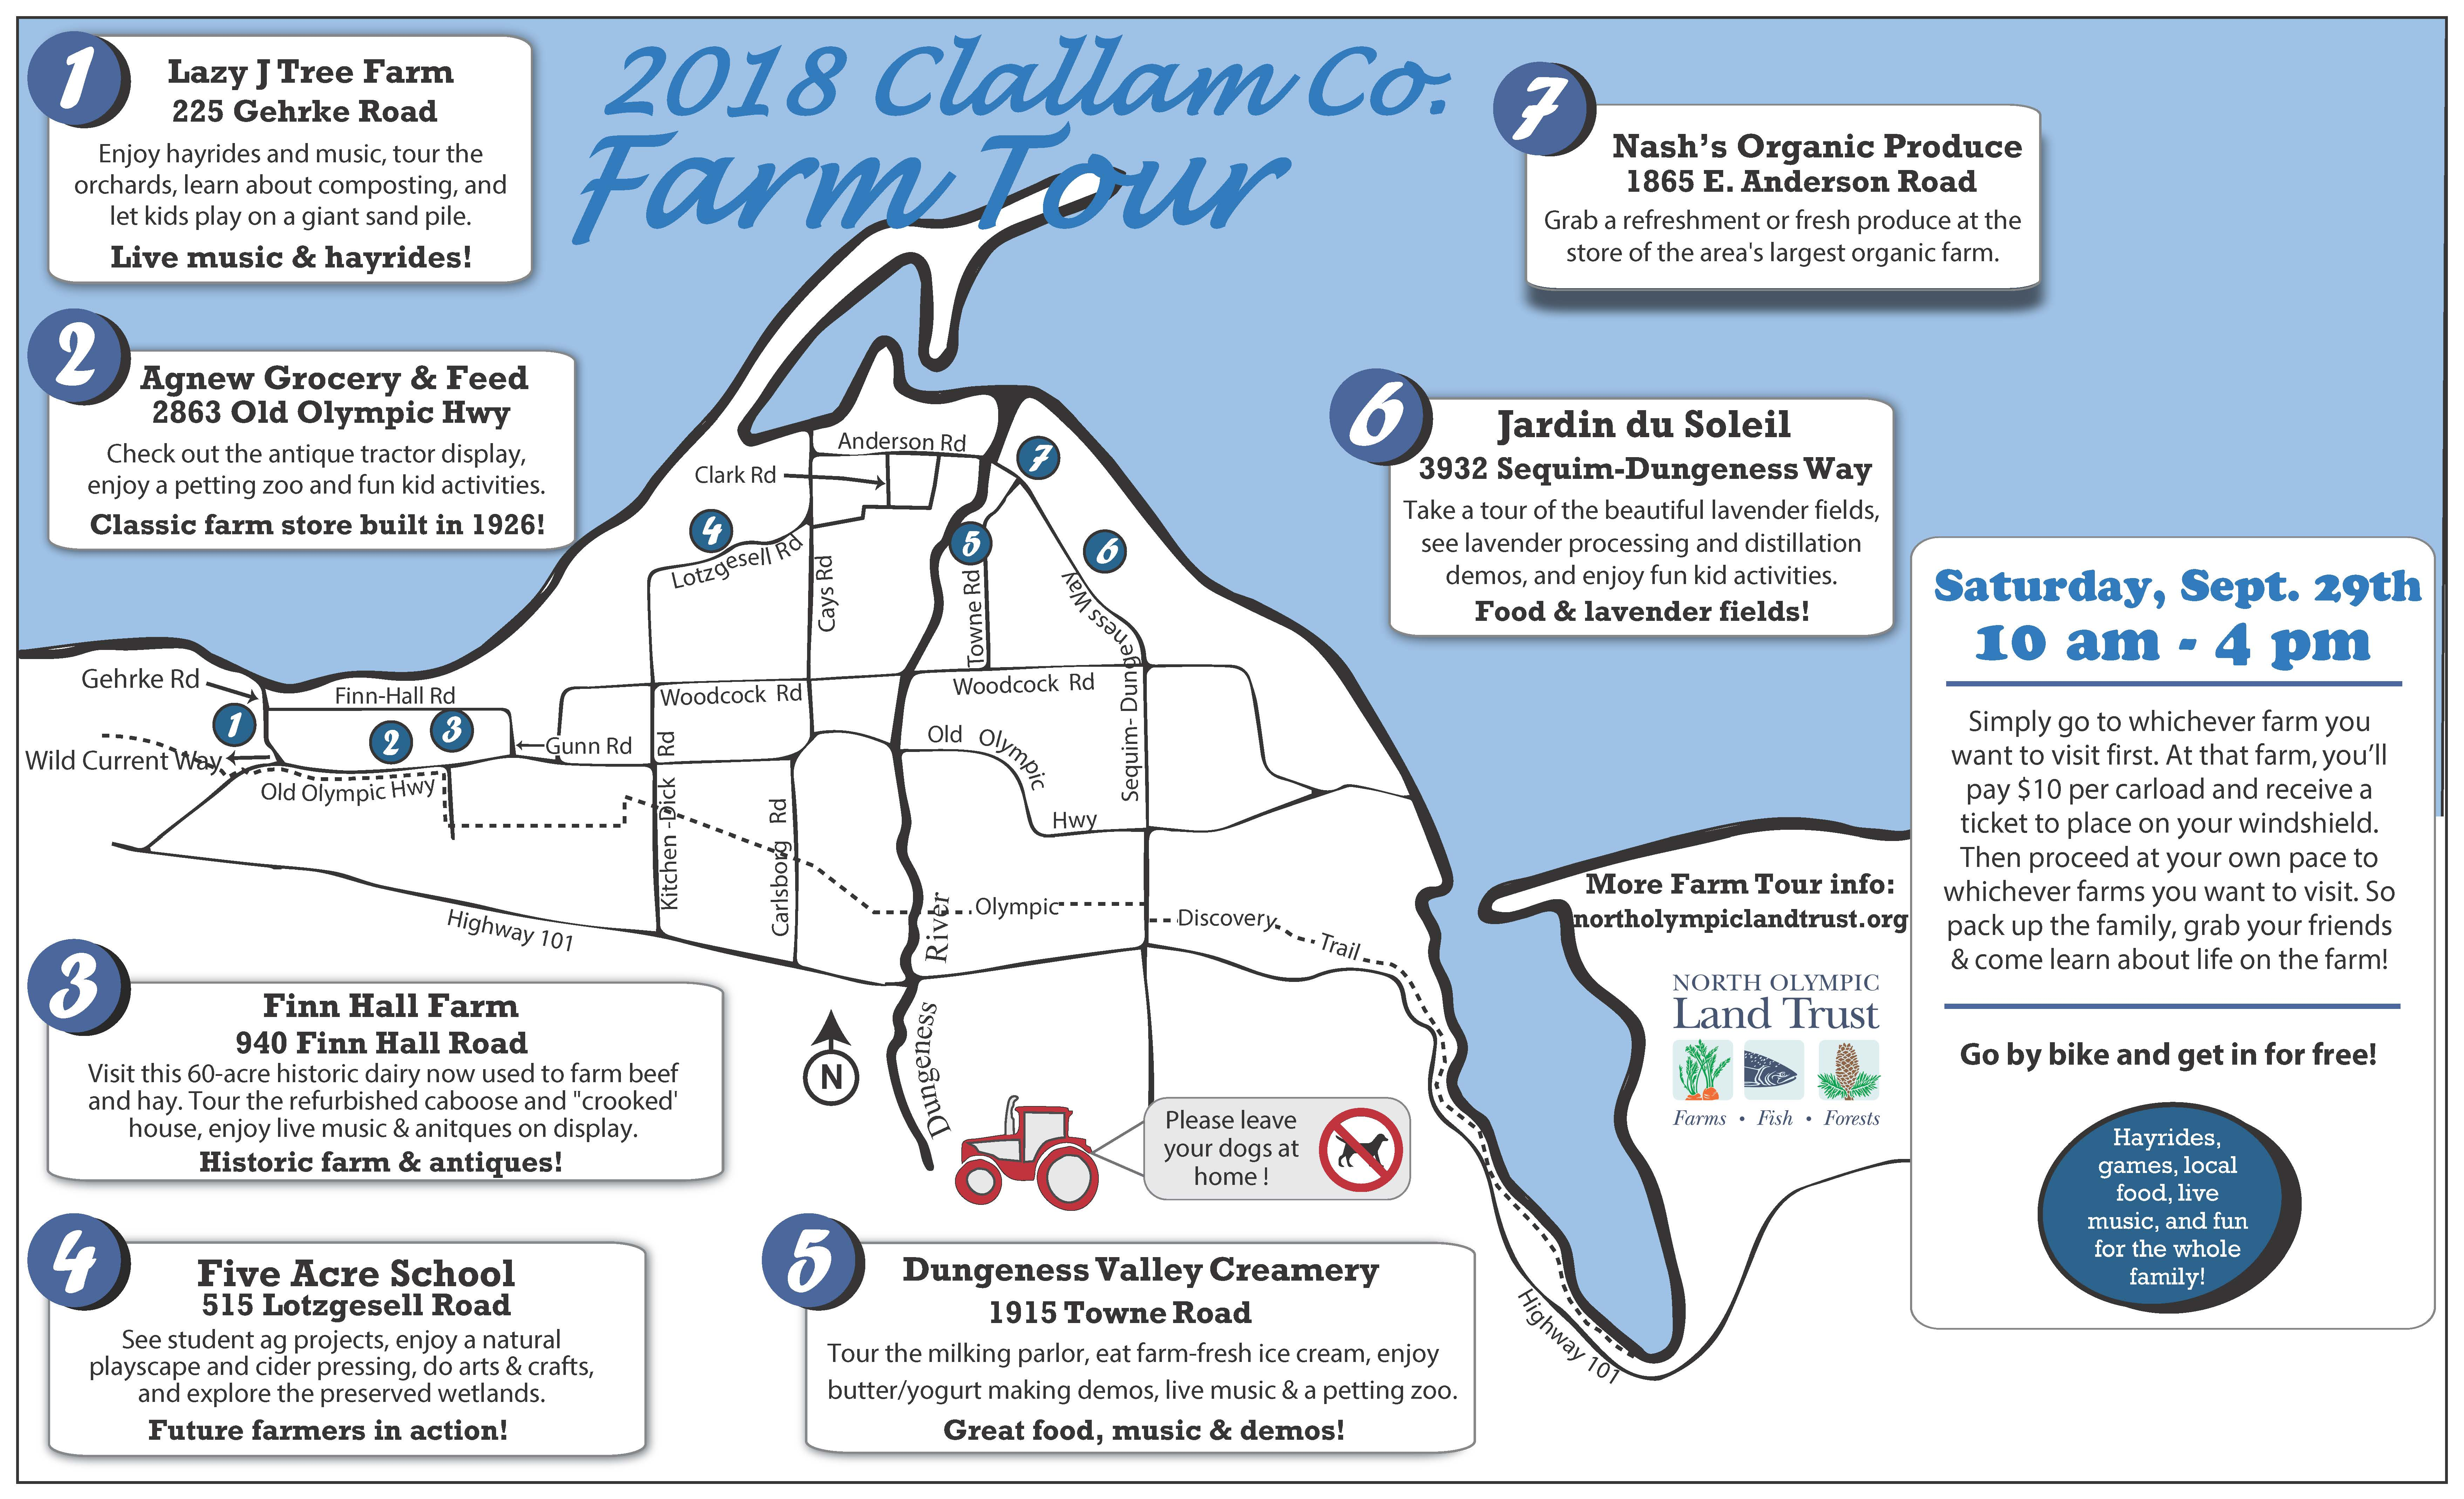 21st Clallam County Farm Tour - North Olympic Land Trust